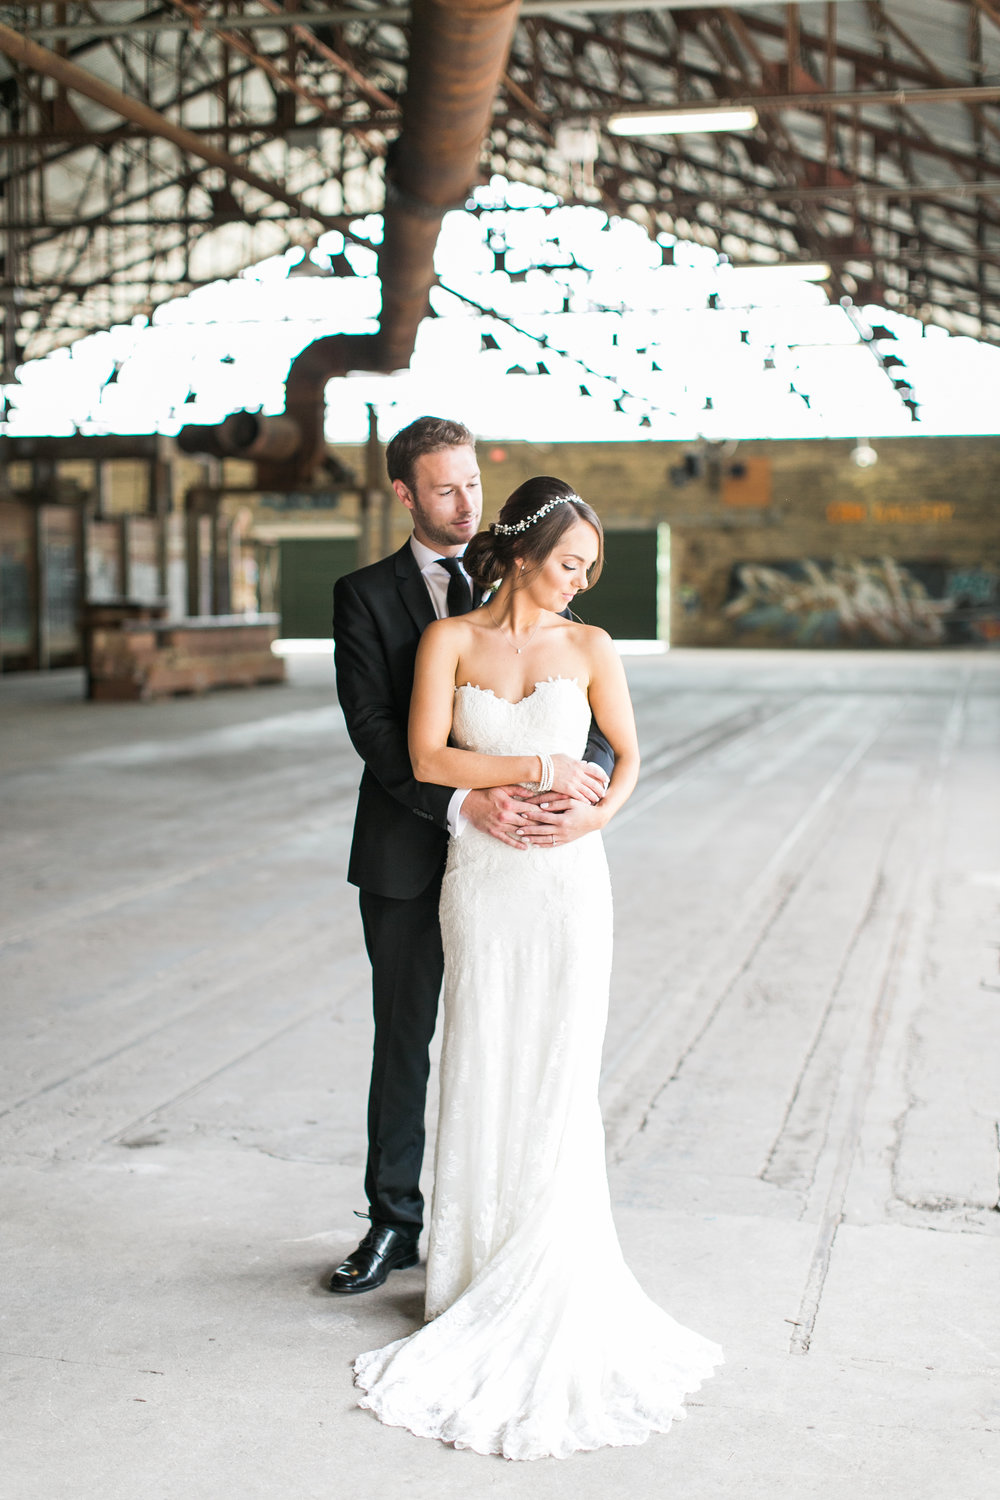 Bride and groom photos at Evergreen Brick Works in Toronto